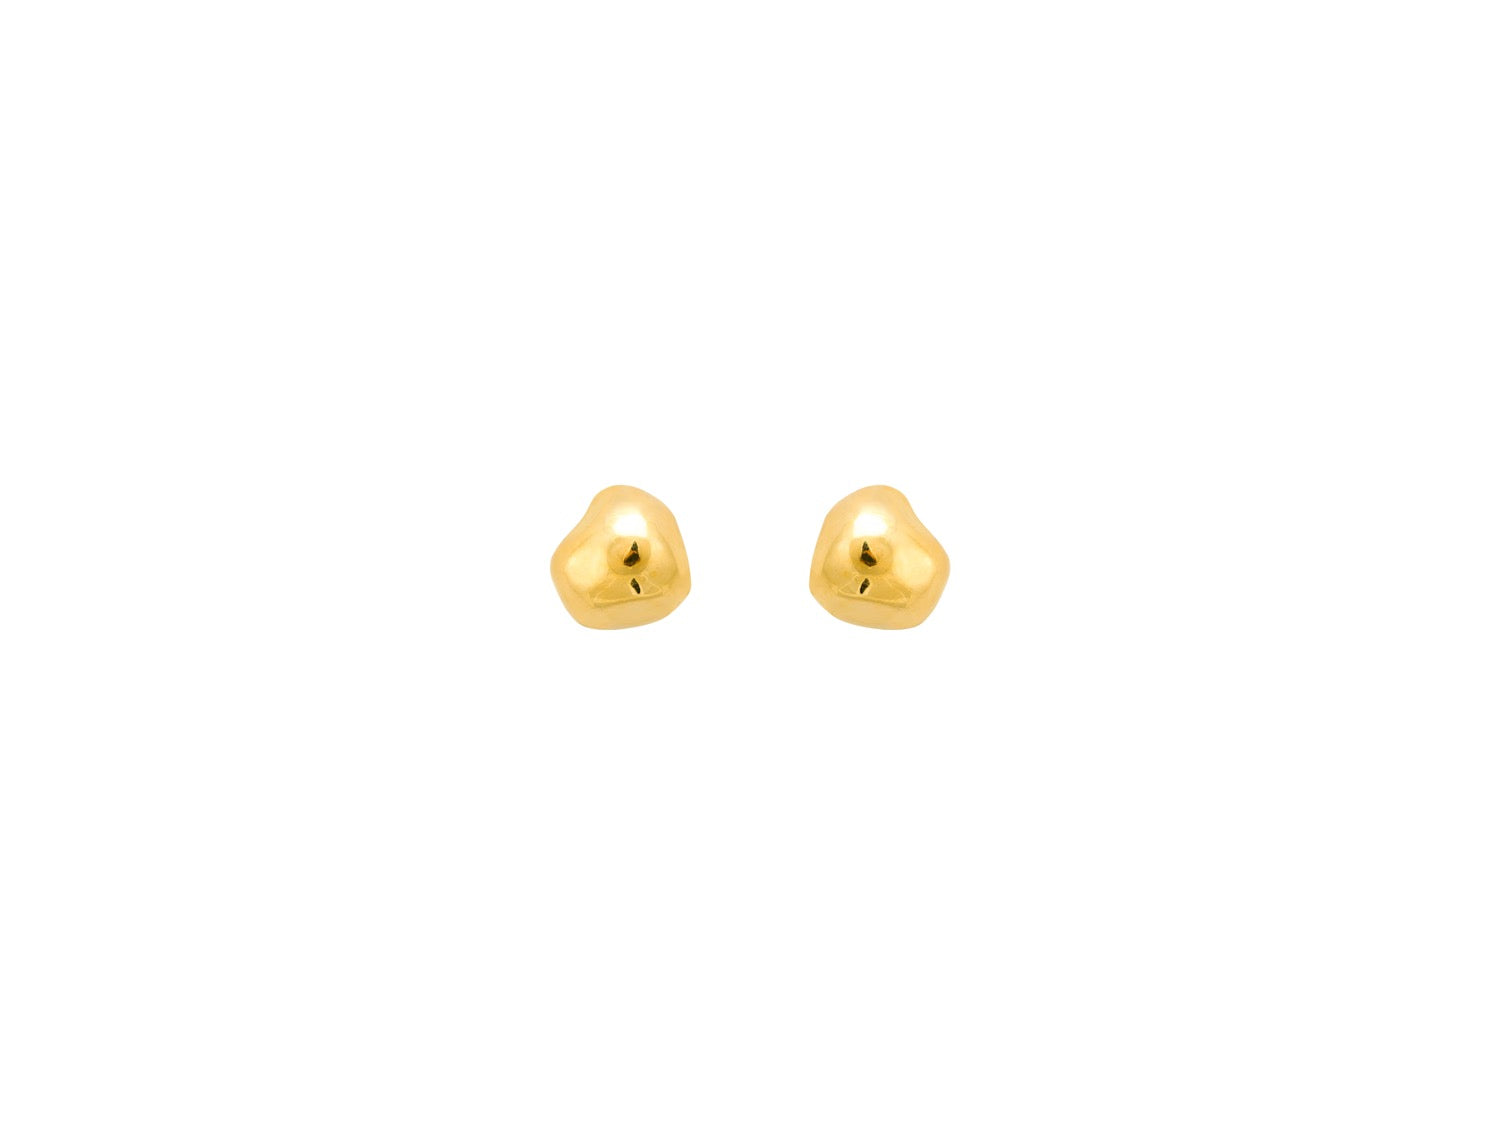 Pebble Stud Earrings / Gold